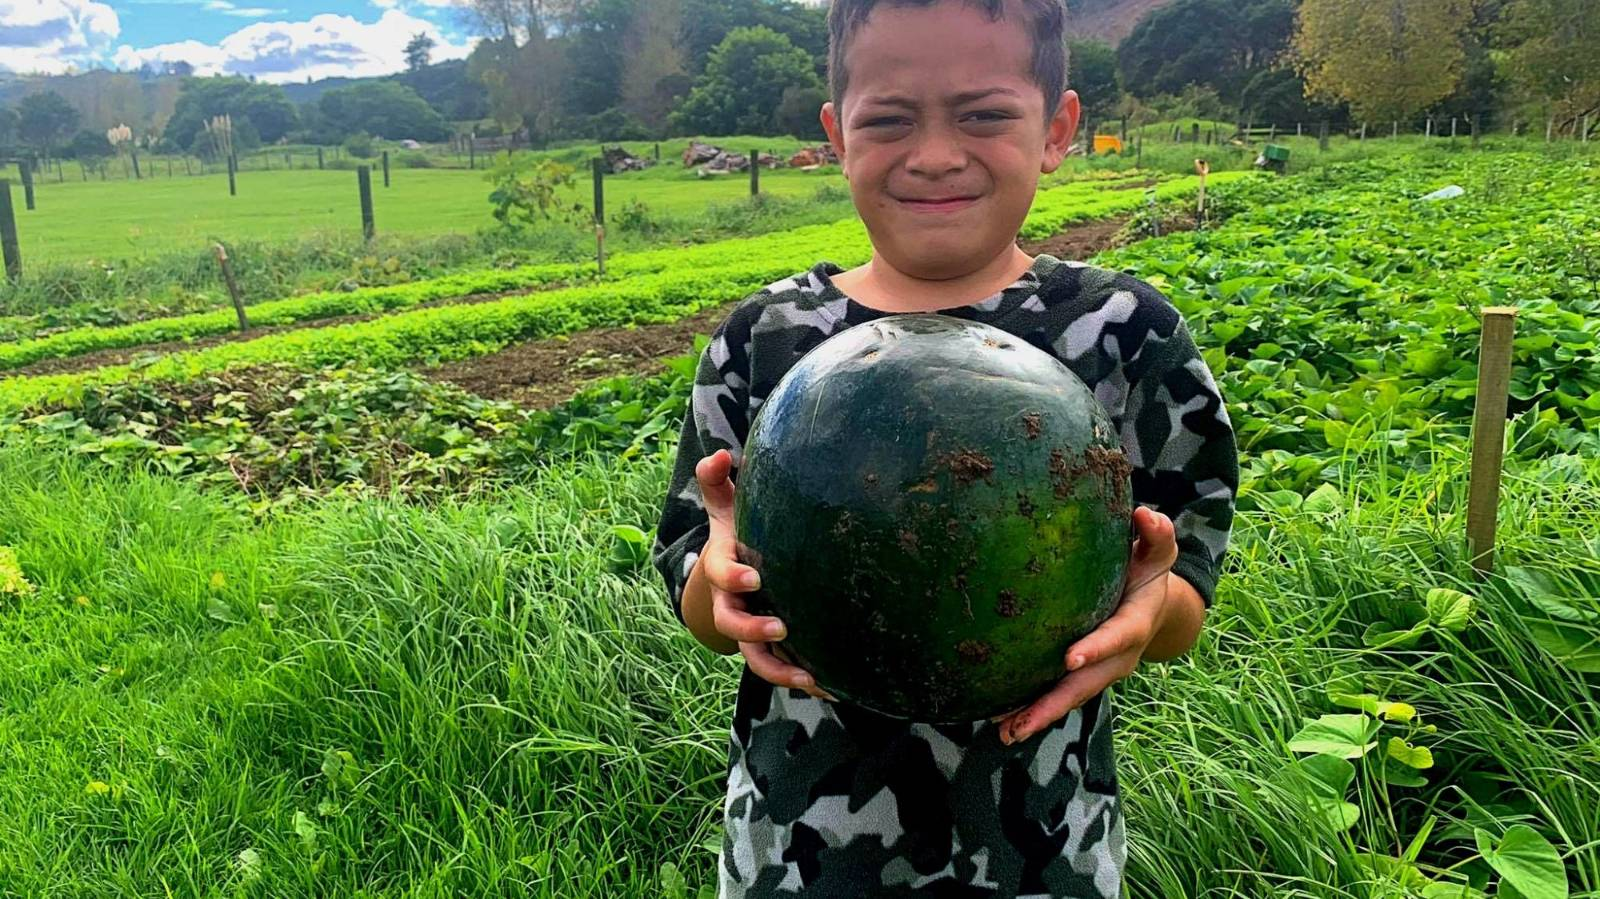 Kaitiakitanga & food forests: 'We can't just take'